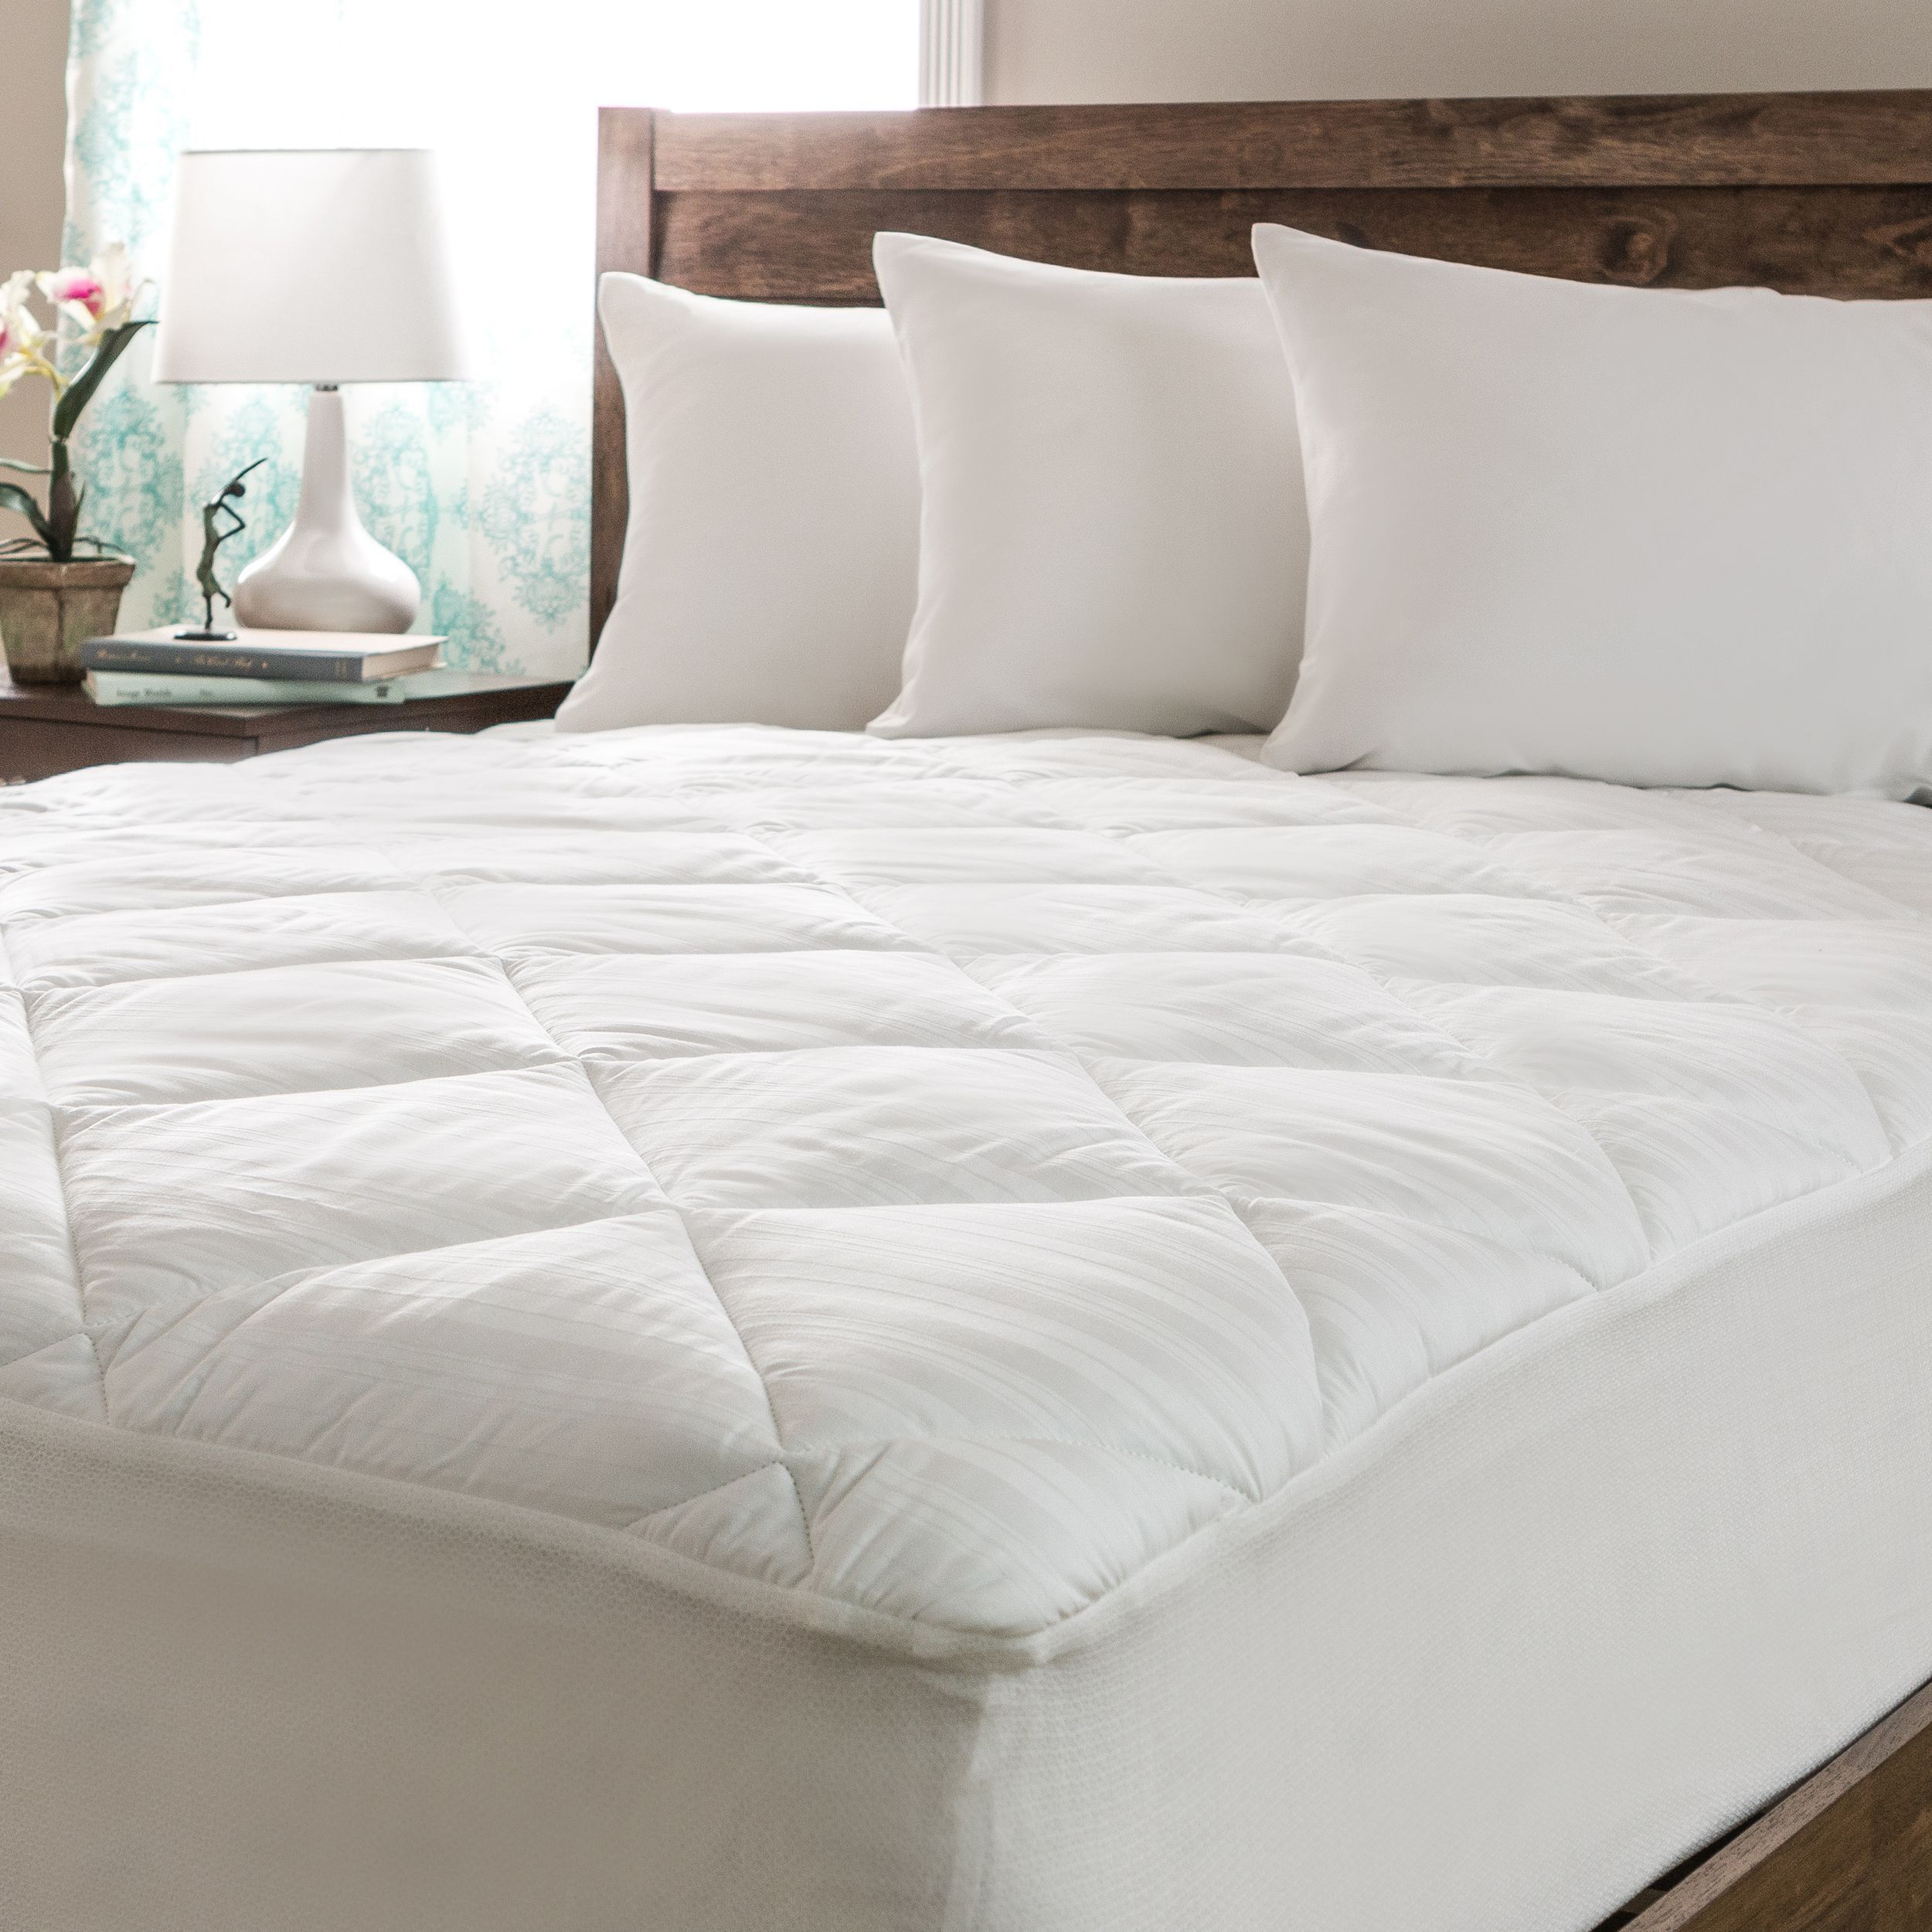 This comfortable mattress pad features a thread count of